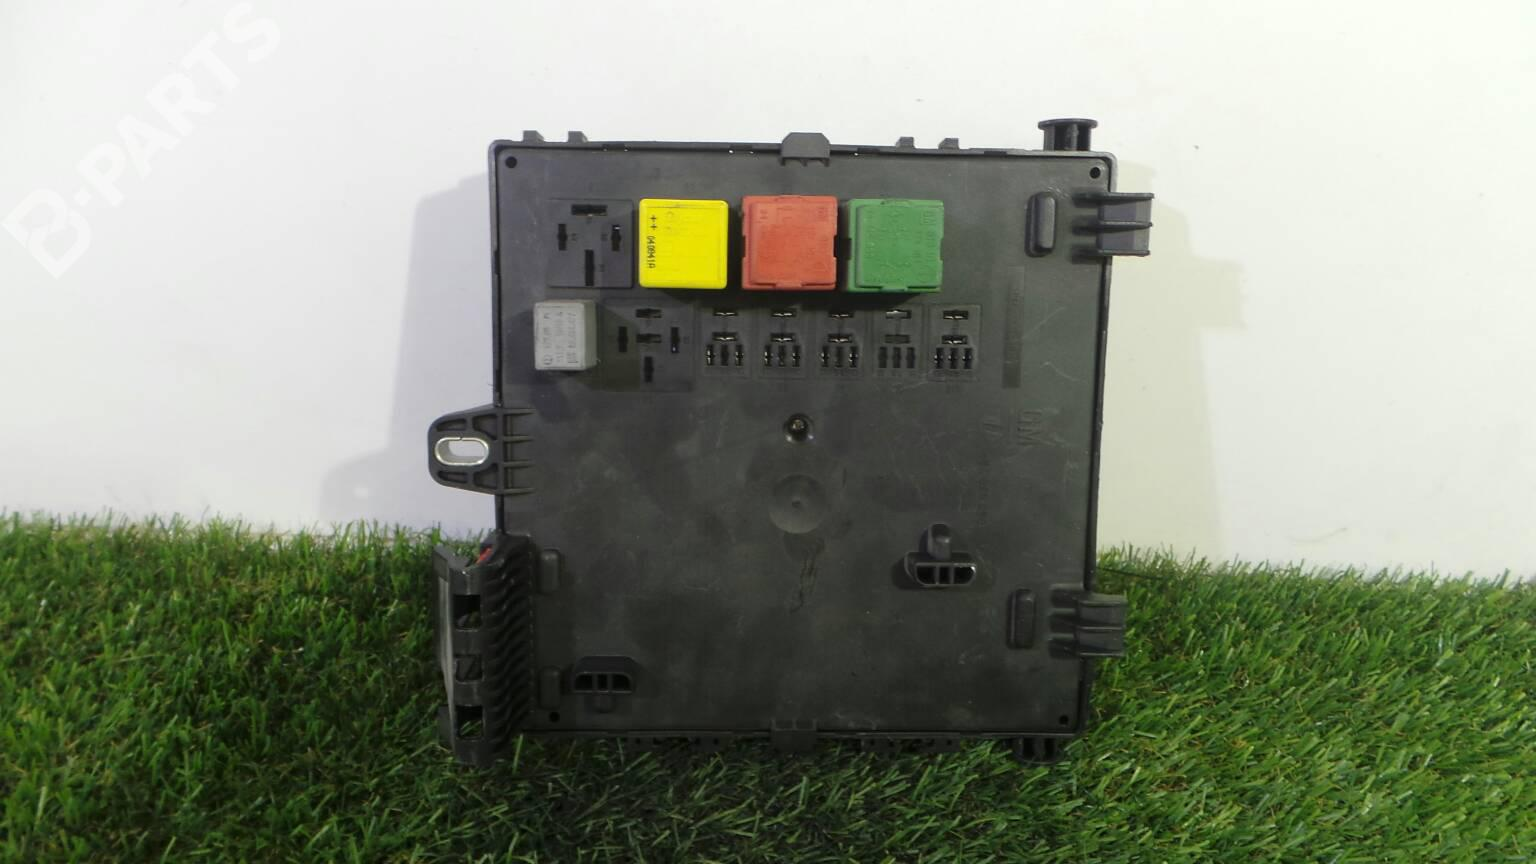 Fuse Box 13 170 890 OPEL, VECTRA C 3.0 CDTI (177hp) Y 30 ...